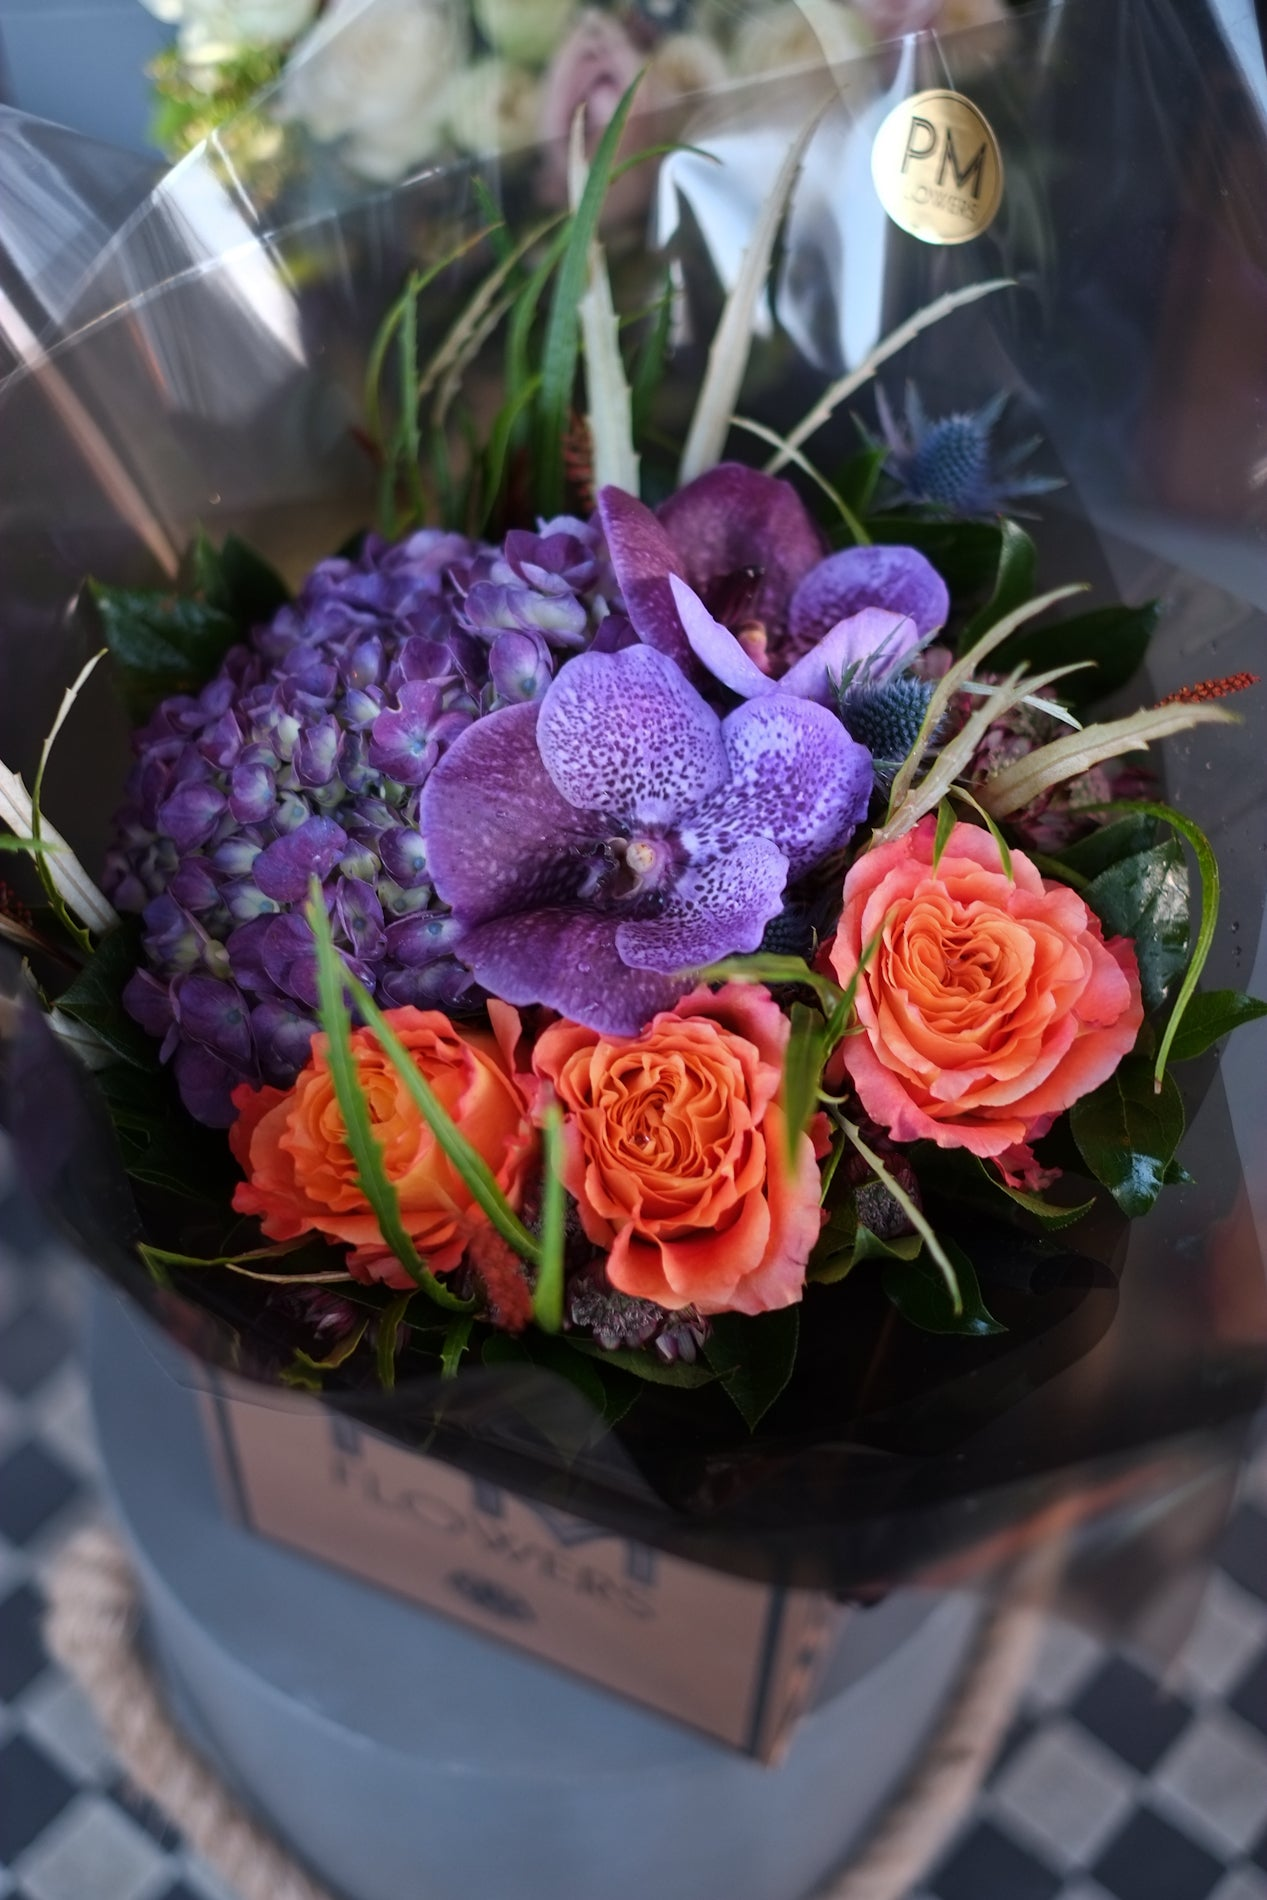 A London flower arrangement of purple hydrangea, vanda and large orange roses accompanied with some light wil foliage.